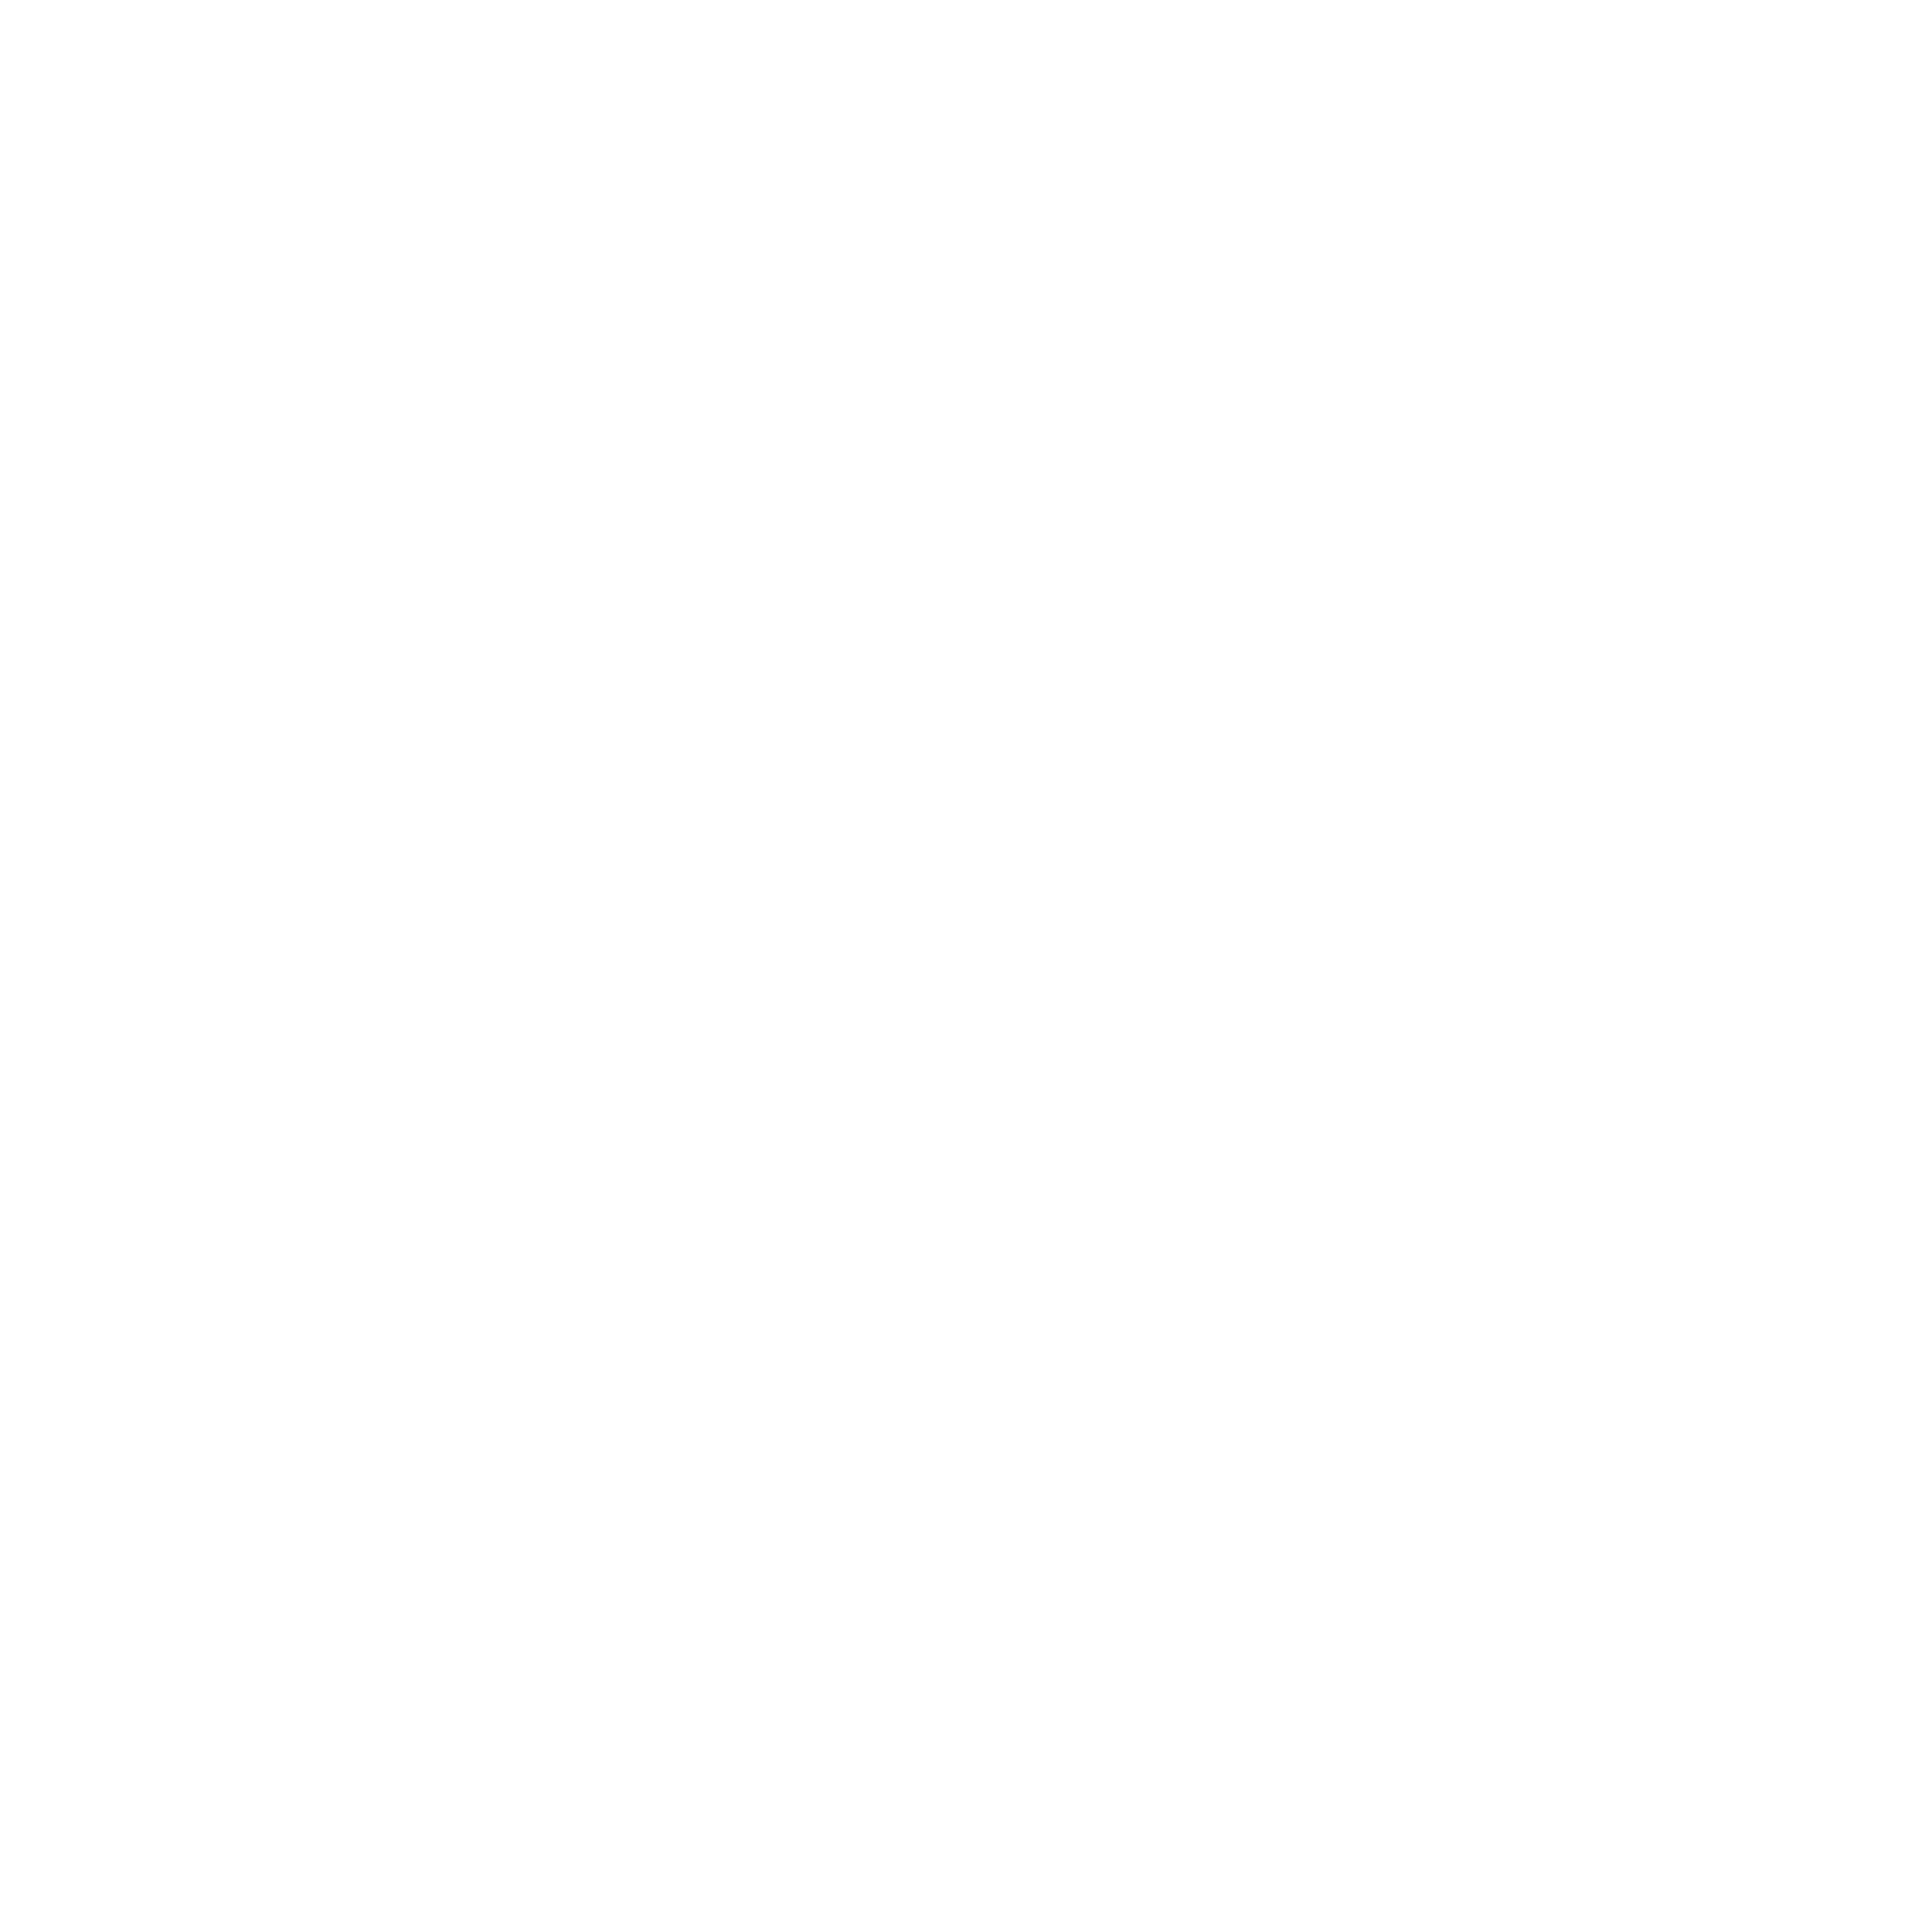 White snowflake png. Snowflakes transparent images pluspng